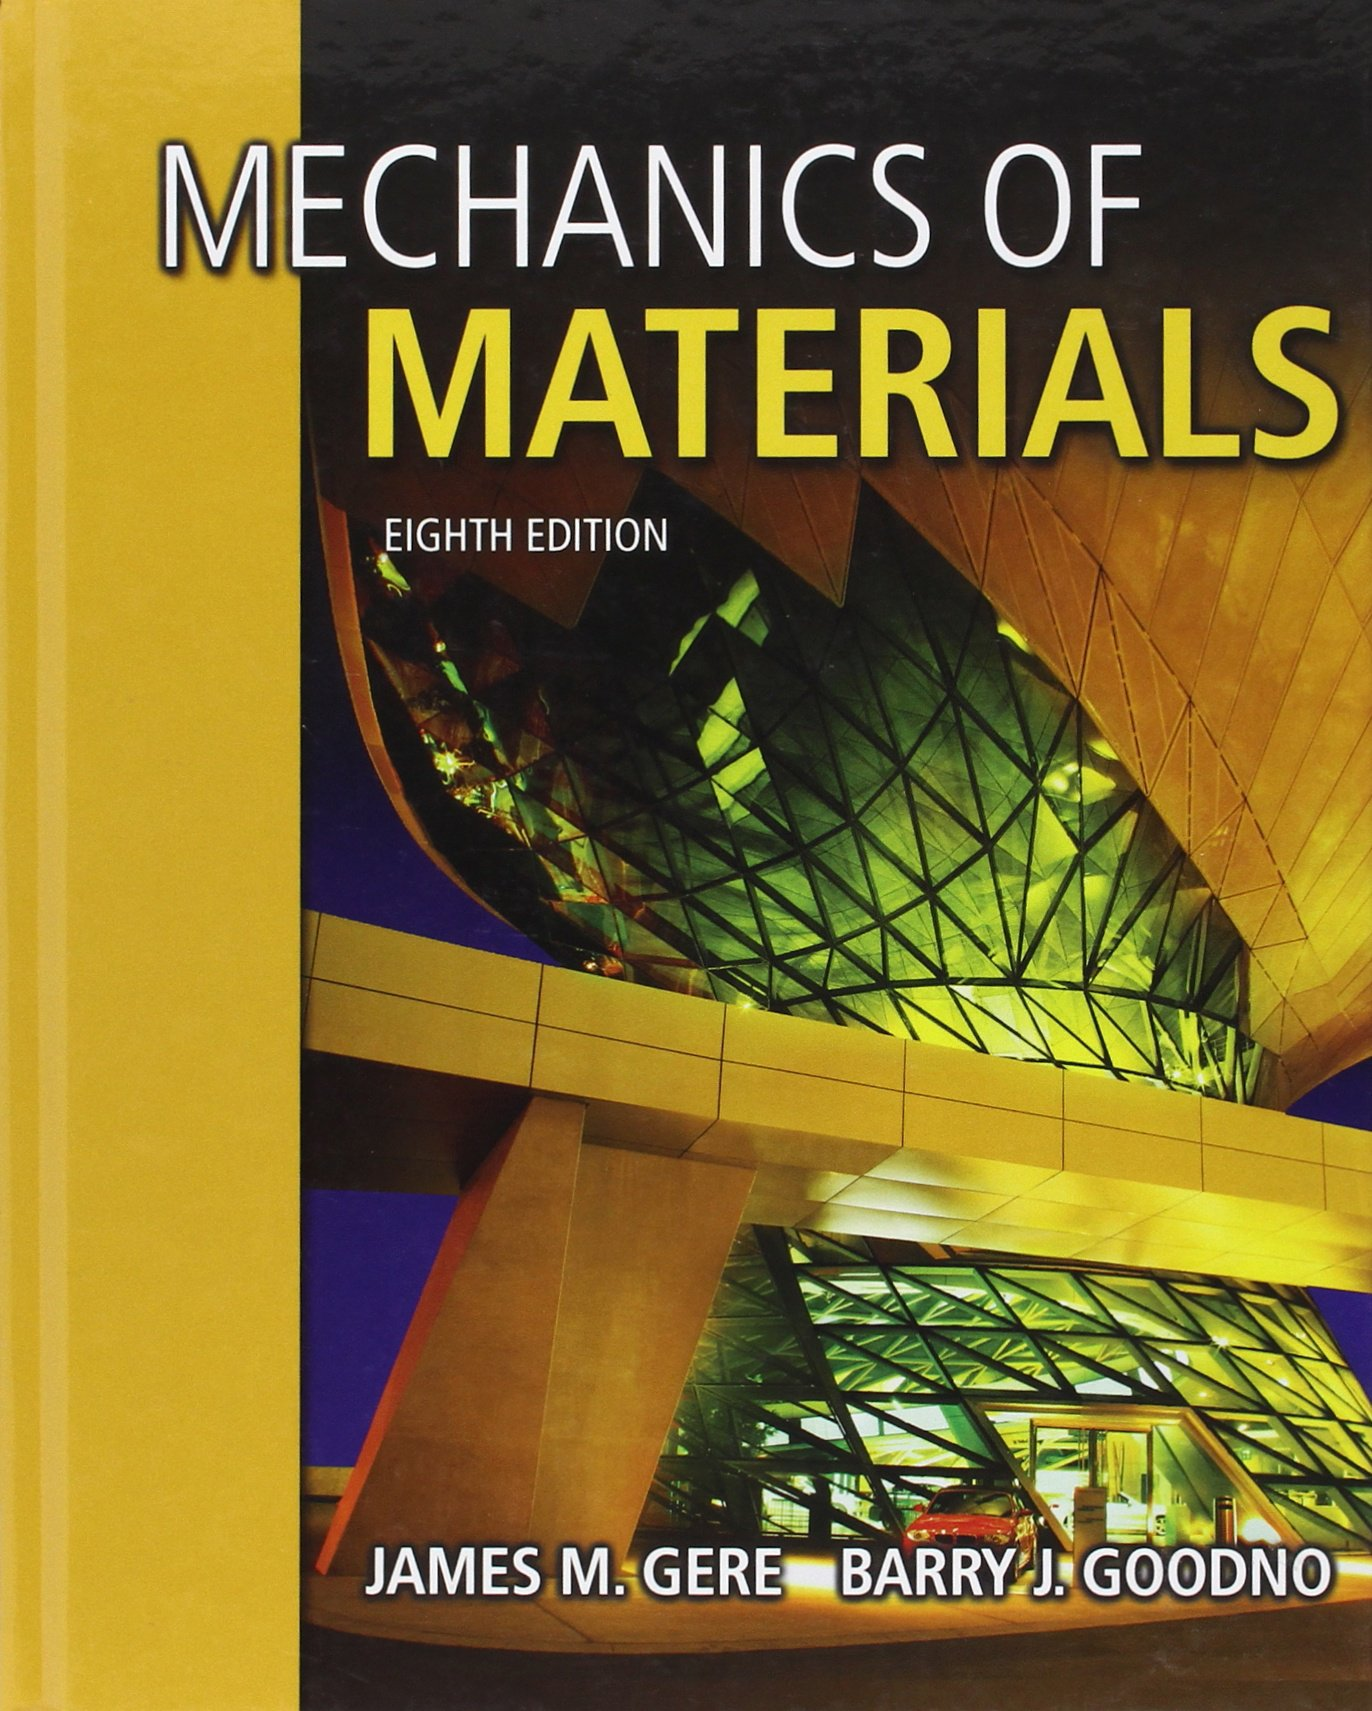 Mechanics of Materials [PDF] By James M. Gere, Stephen P ...